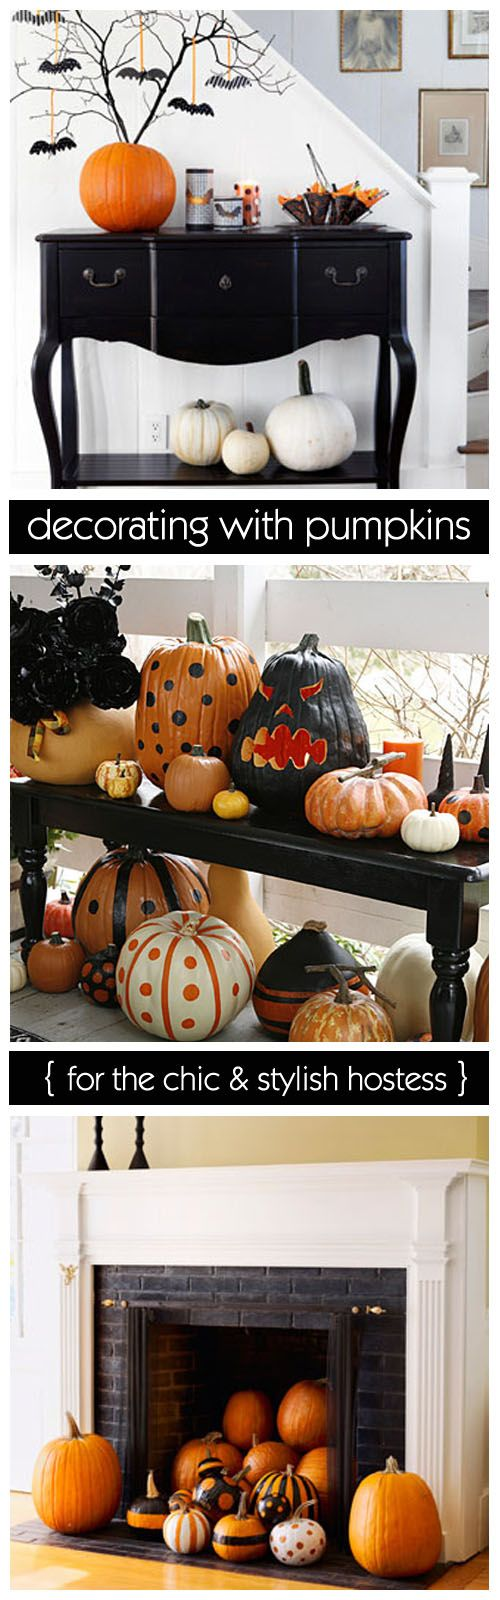 .: Pumpkin Ideas, Decor Ideas, Halloween Decor, Fall Decor, Halloween Pumpkin, Fall Halloween, Pumpkin Decor, Halloween Fal, Paintings Pumpkin